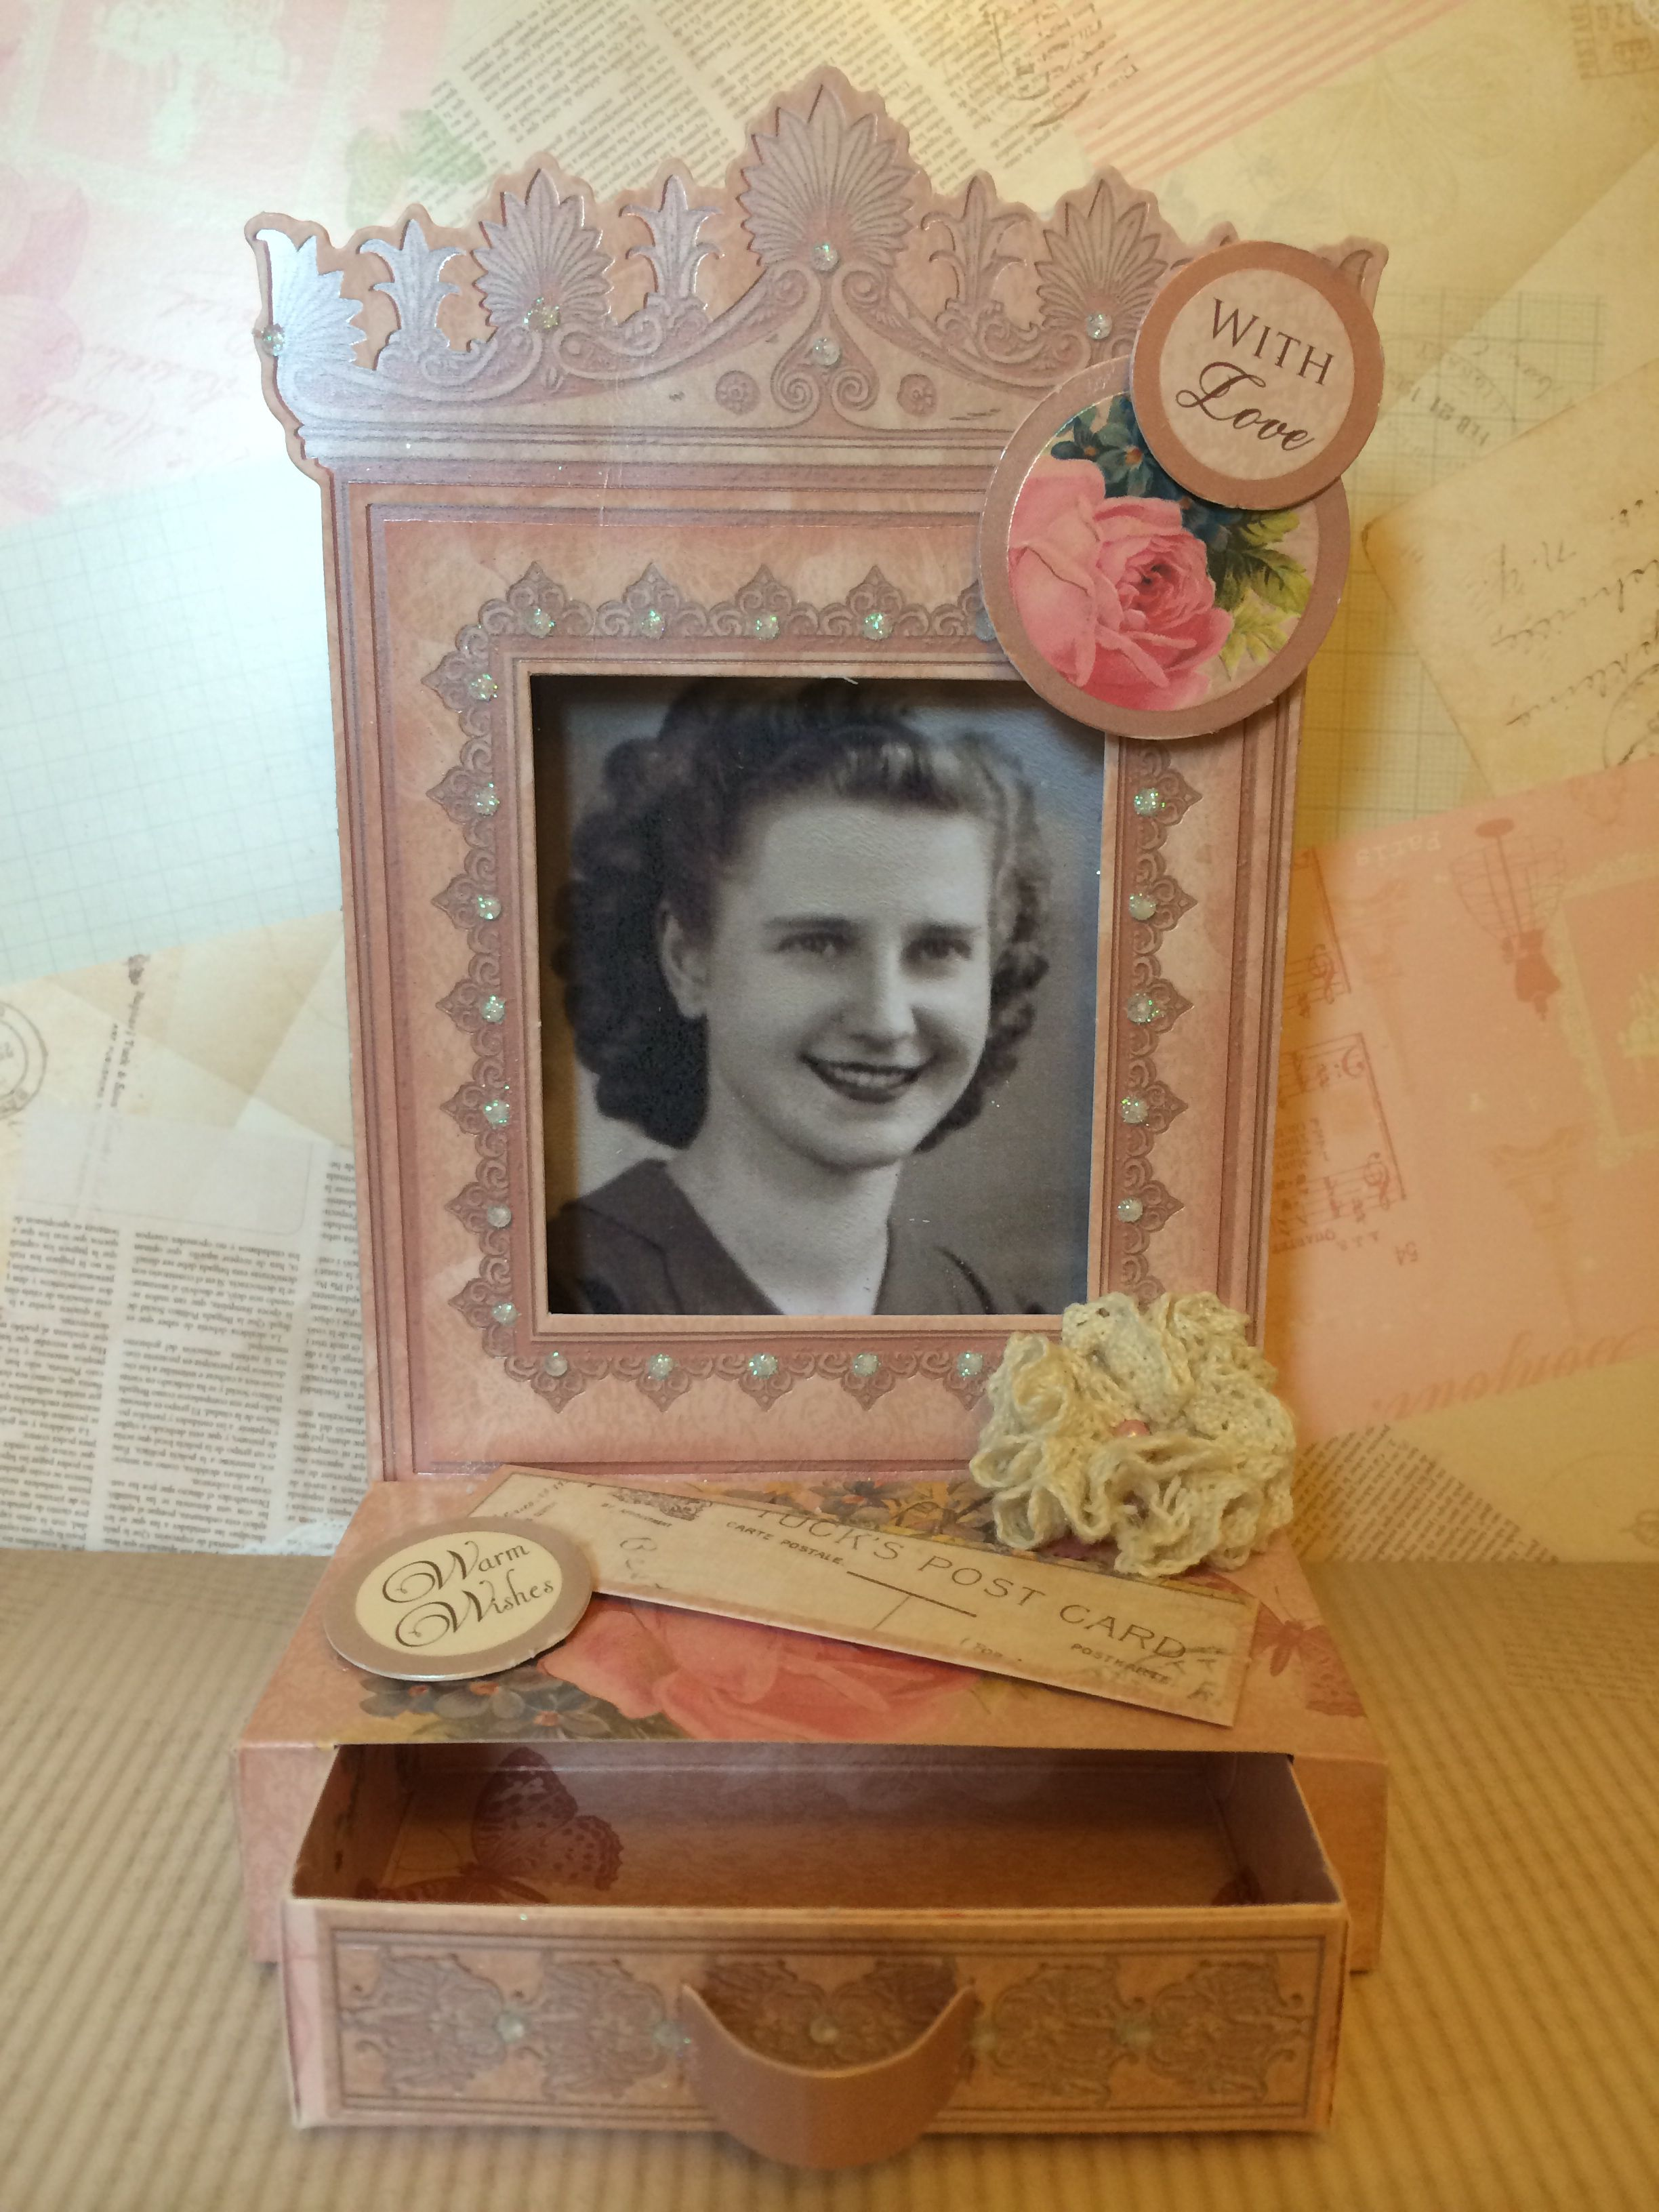 Hunkydory crafts antique chic collection project with picture of my grandma inset. It's for her 86th Birthday!